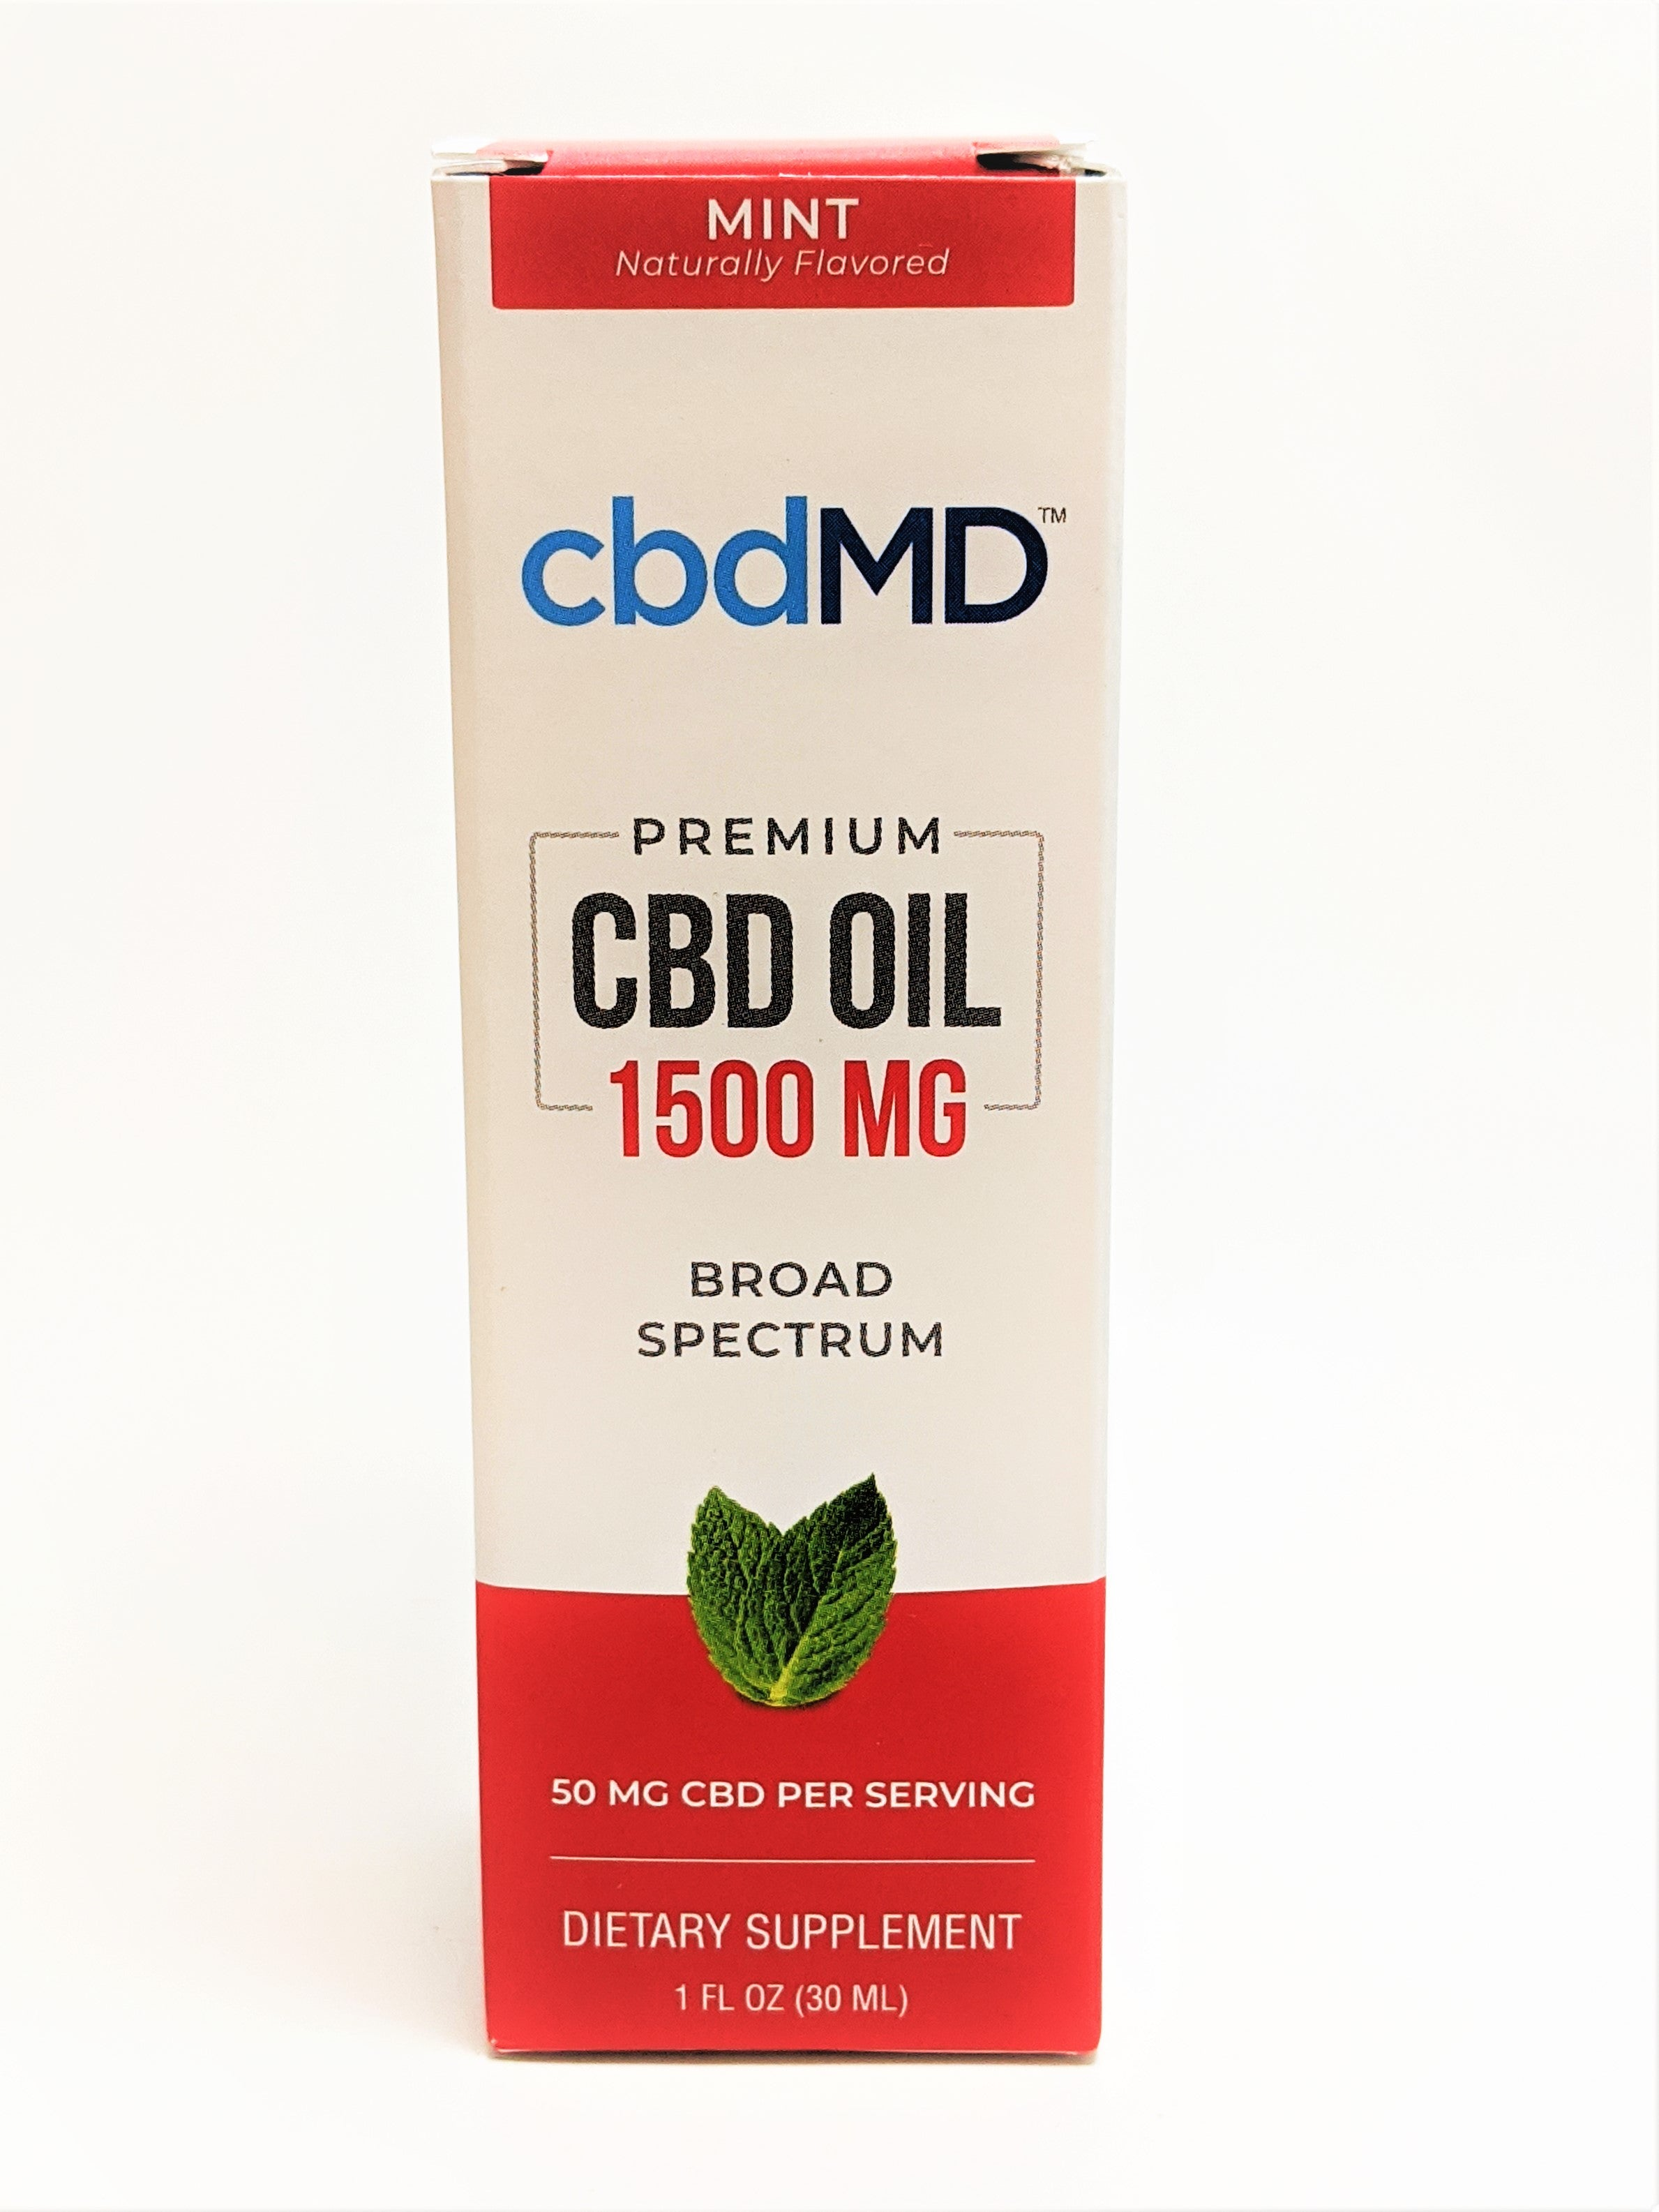 cbdMD 1500 mg Oil - Mint Flavor - CBD Central